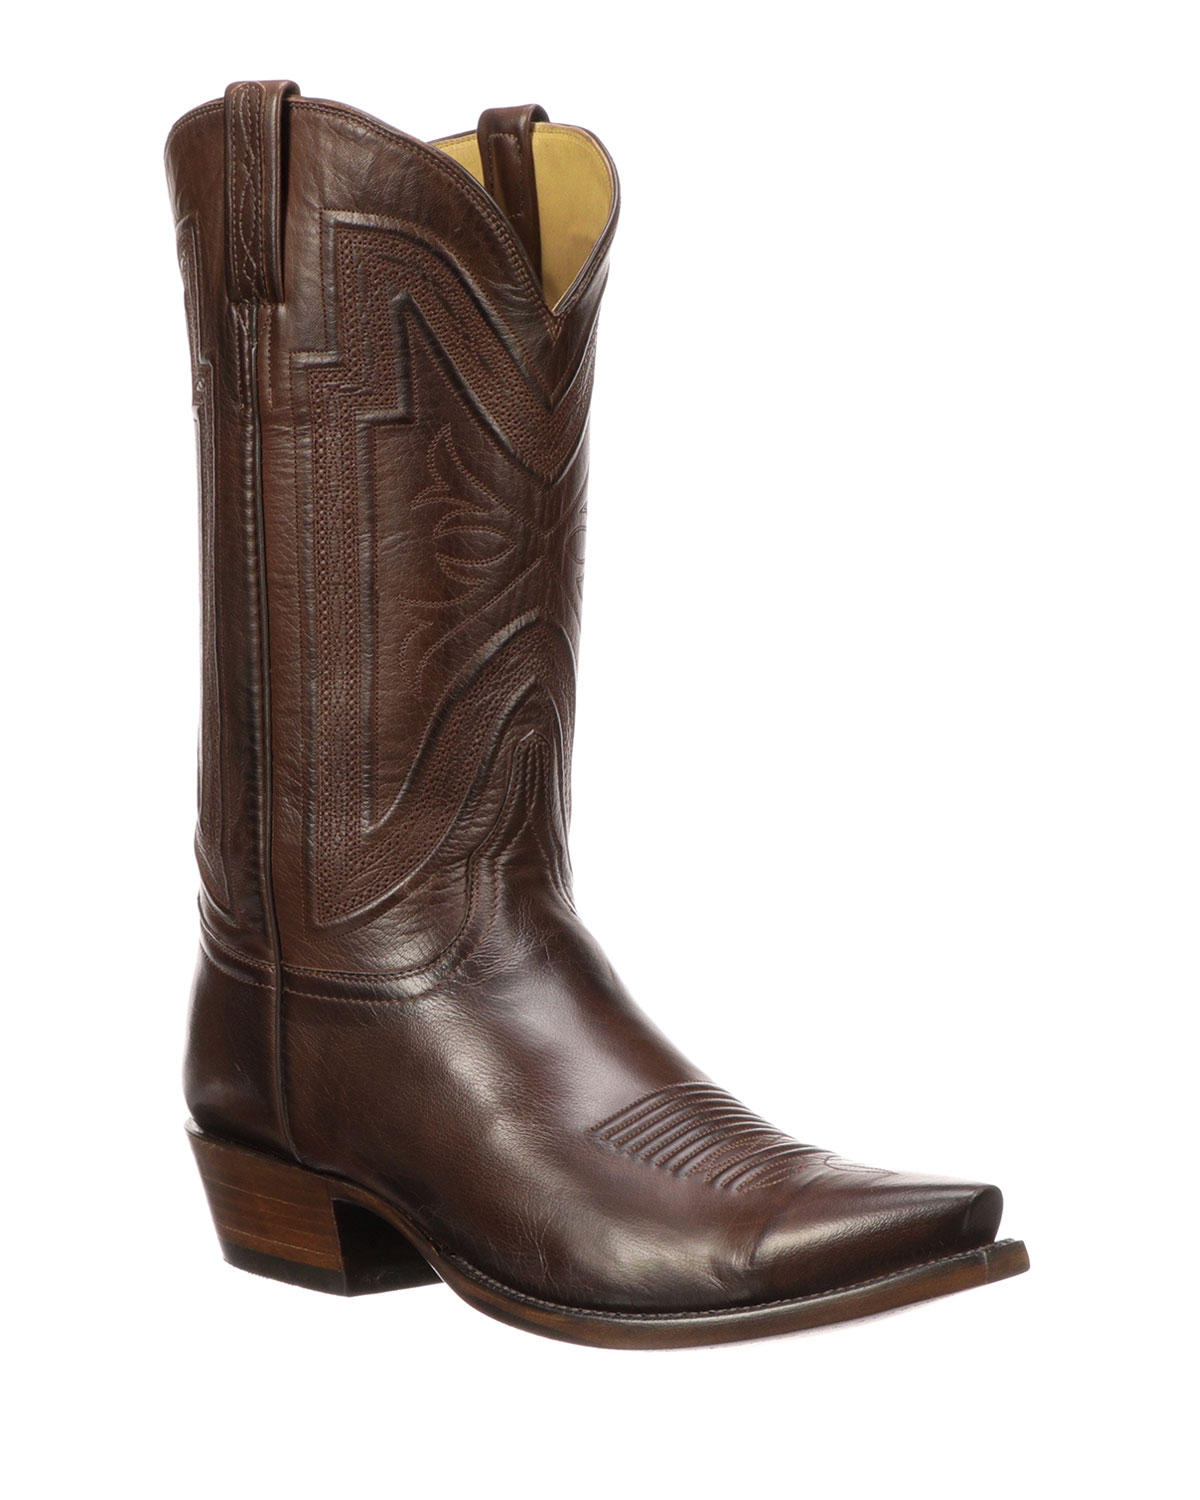 0ff9fd80e45 Men's Collins Leather Cowboy Boots